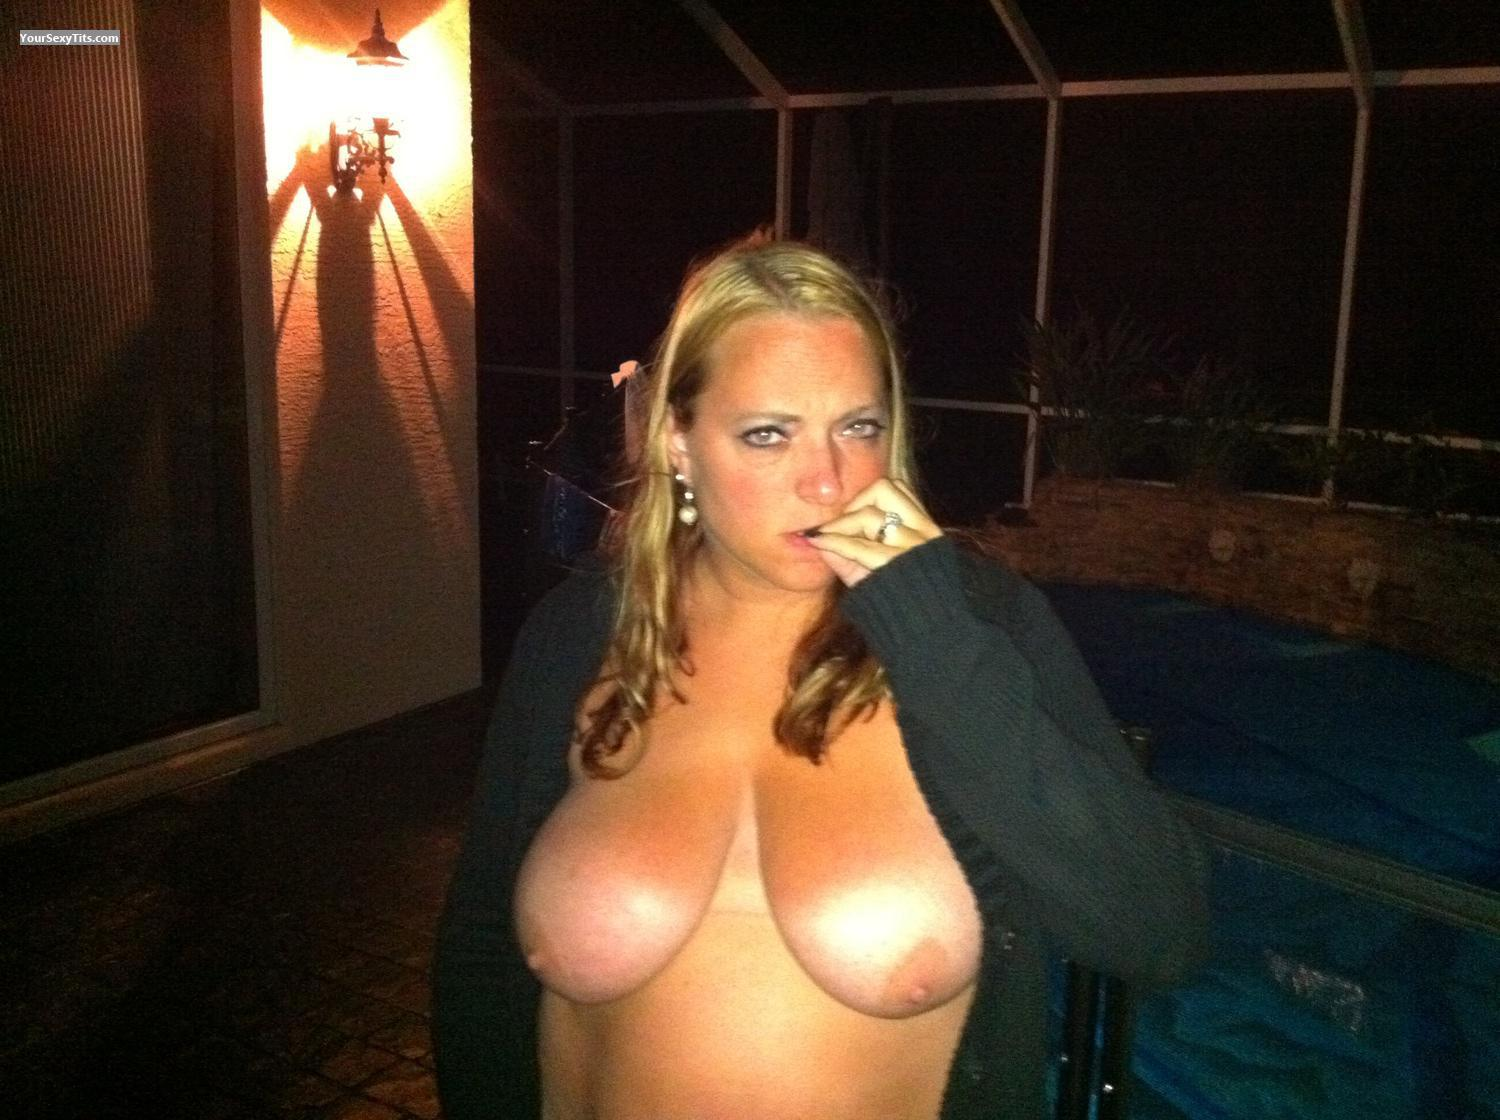 Tit Flash: Big Tits By IPhone - Topless Partylady from United States